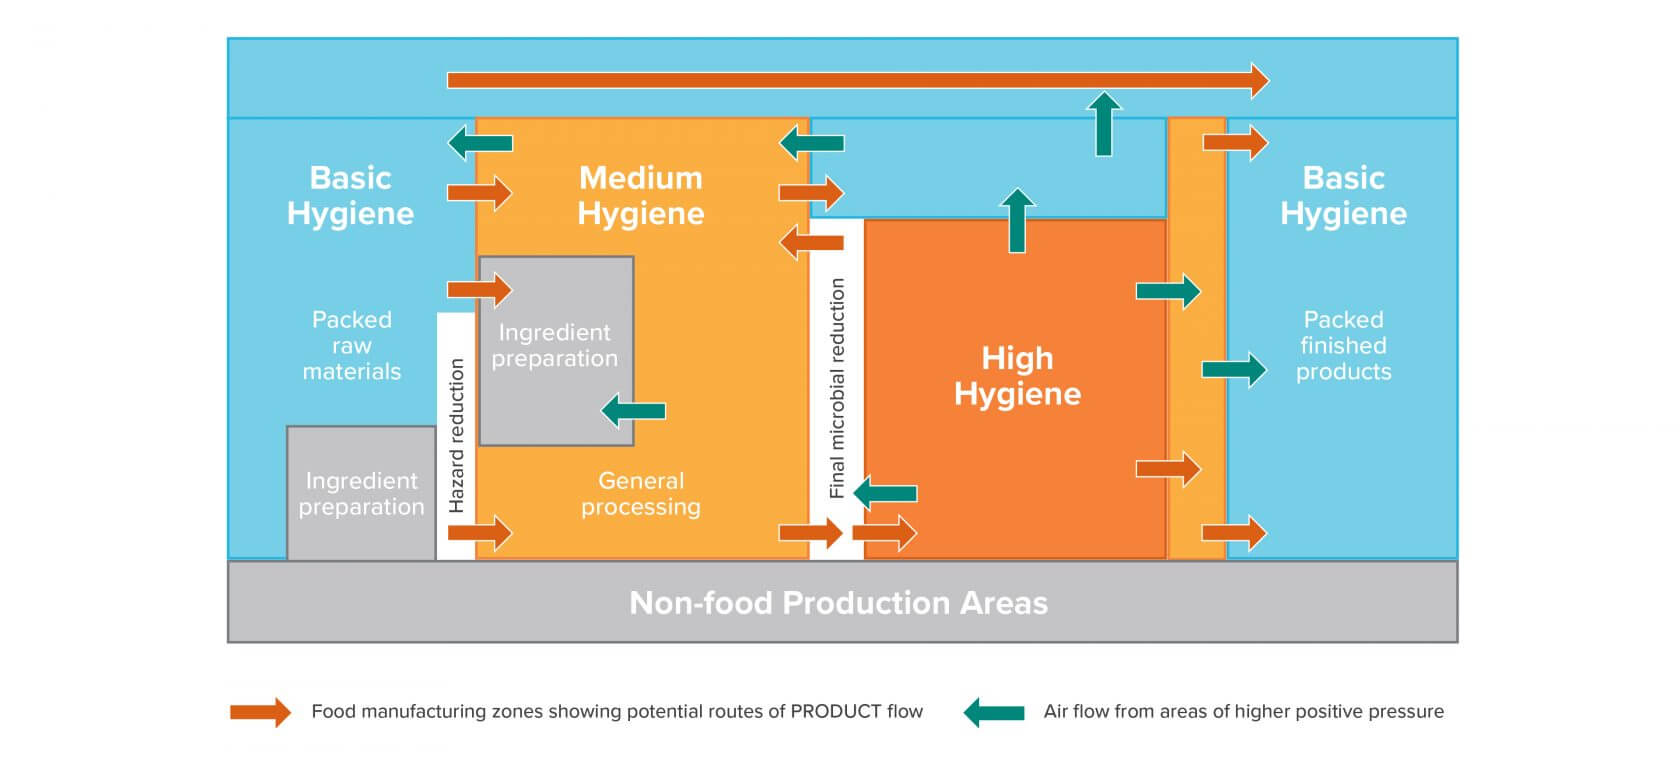 Controlling materials movement and air flow through a facility to prevent cross-contamination